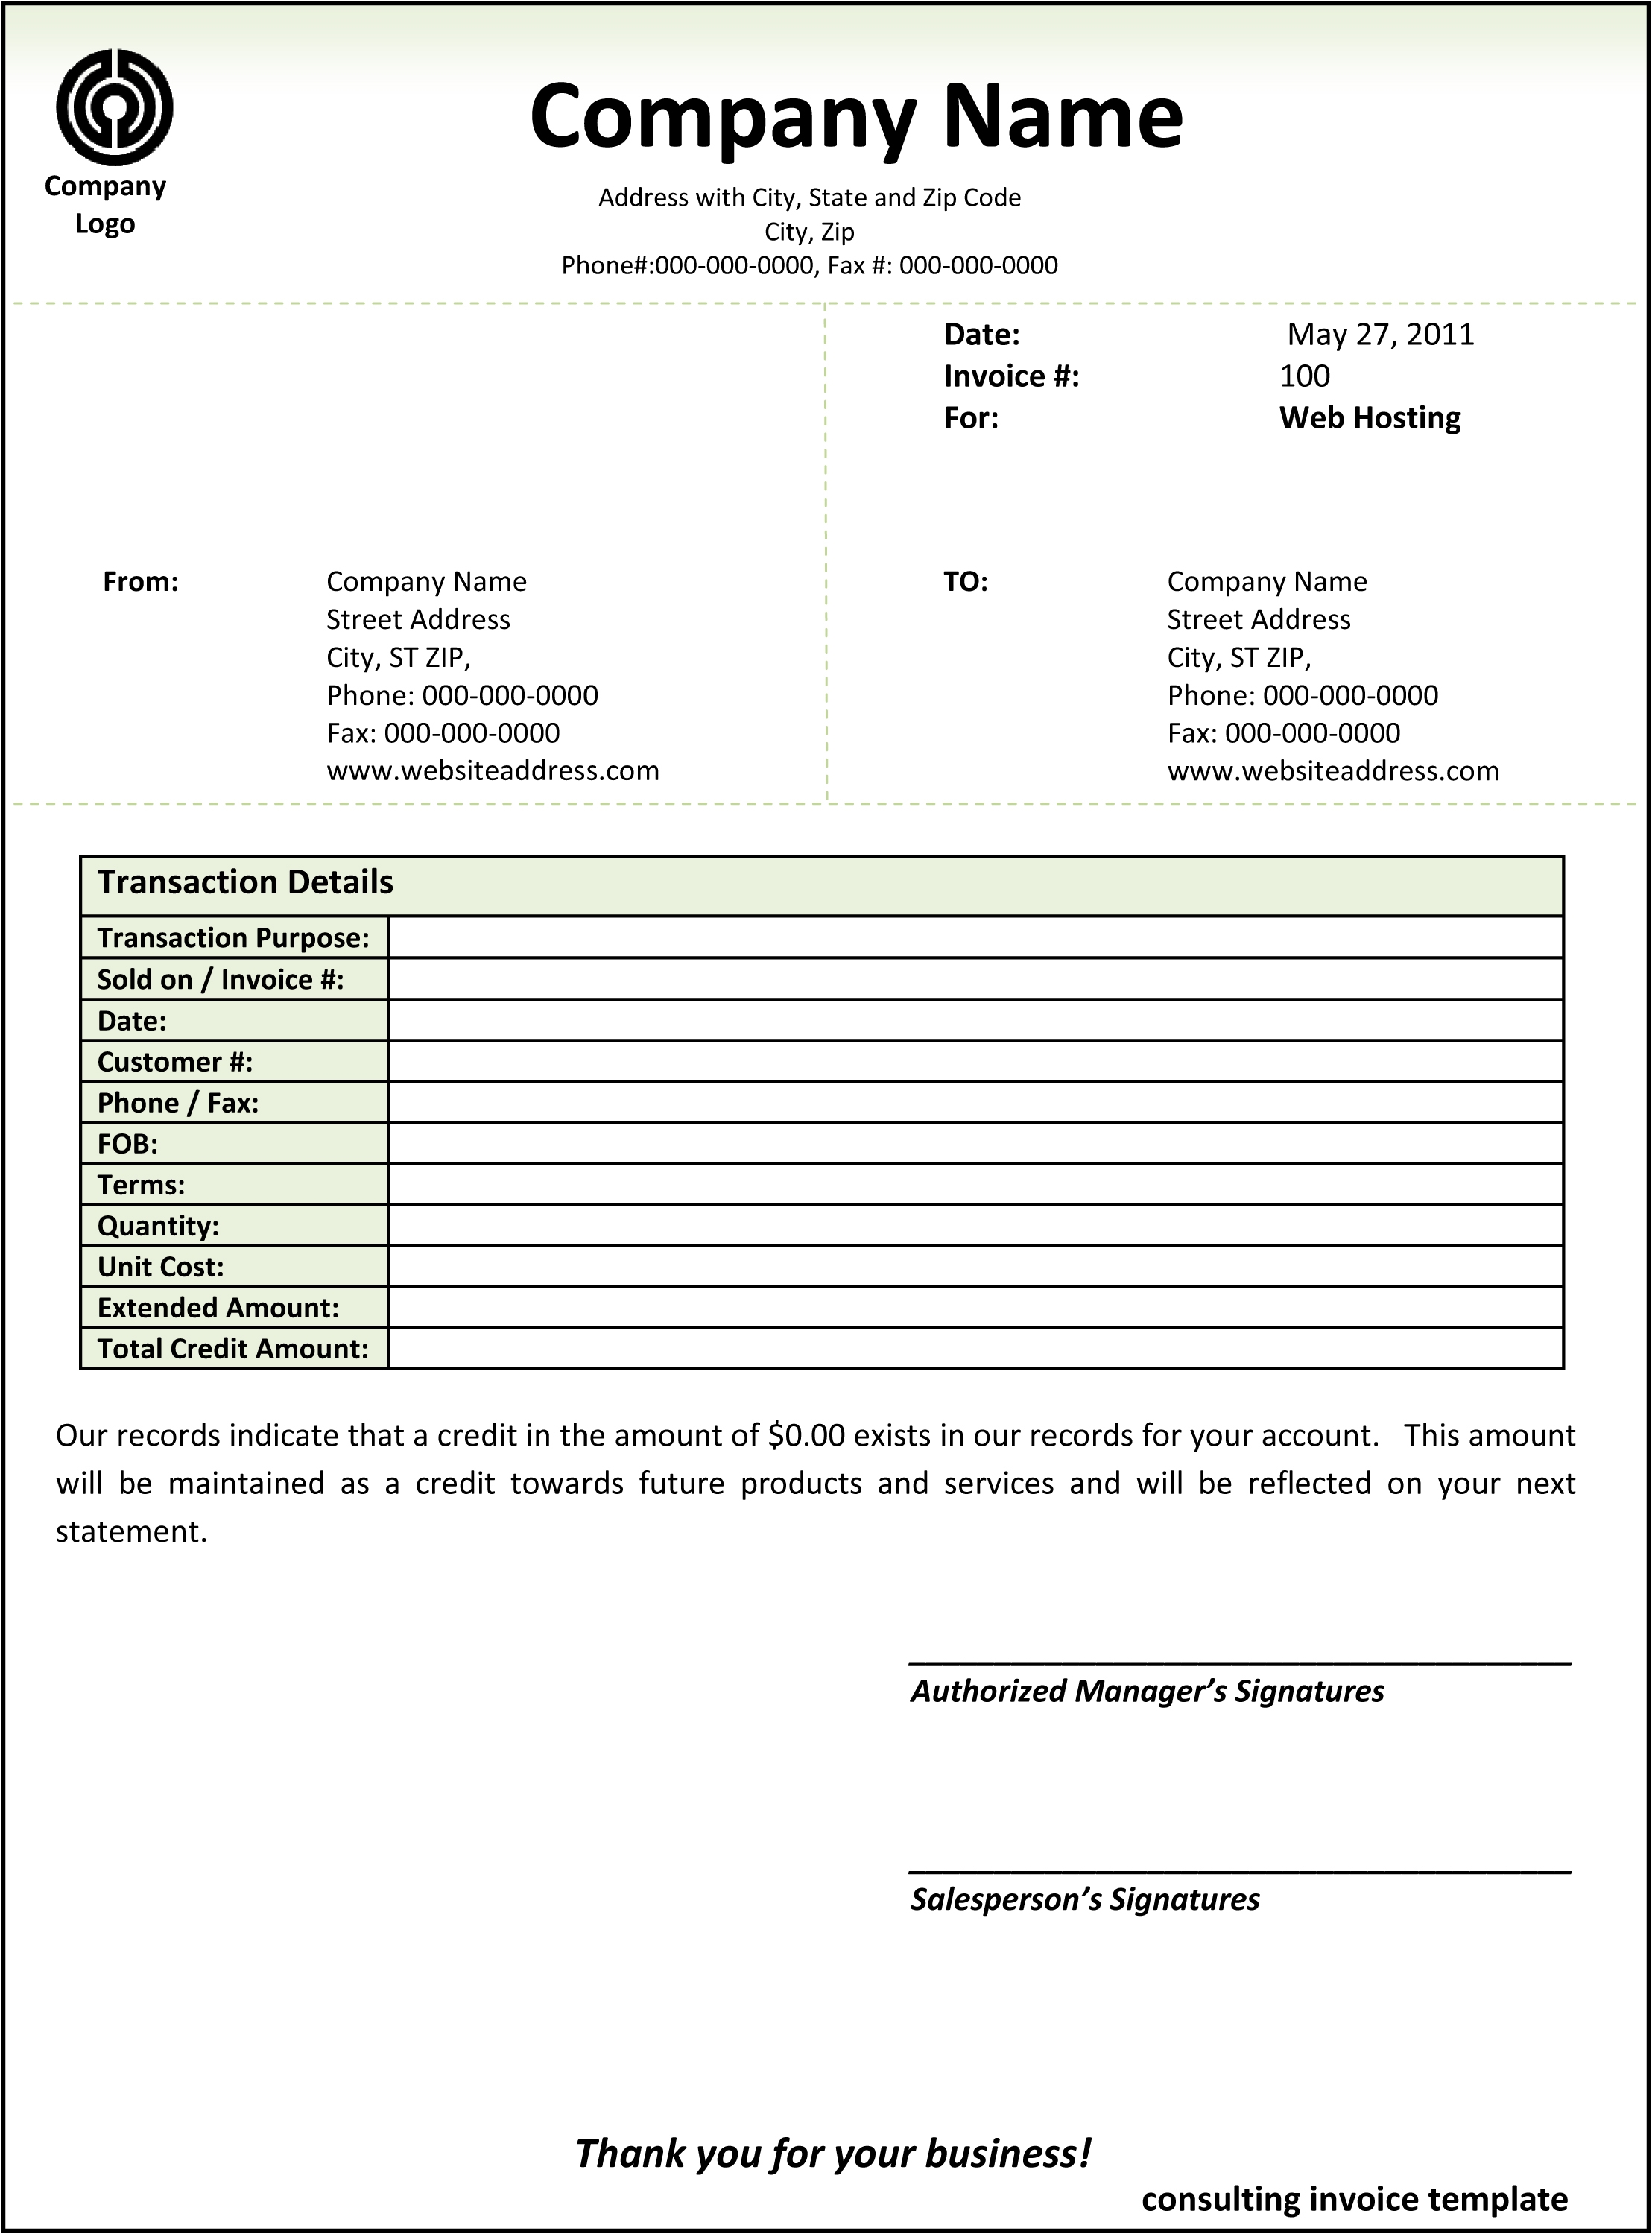 consulting invoice template word consulting invoice template sample consulting invoice